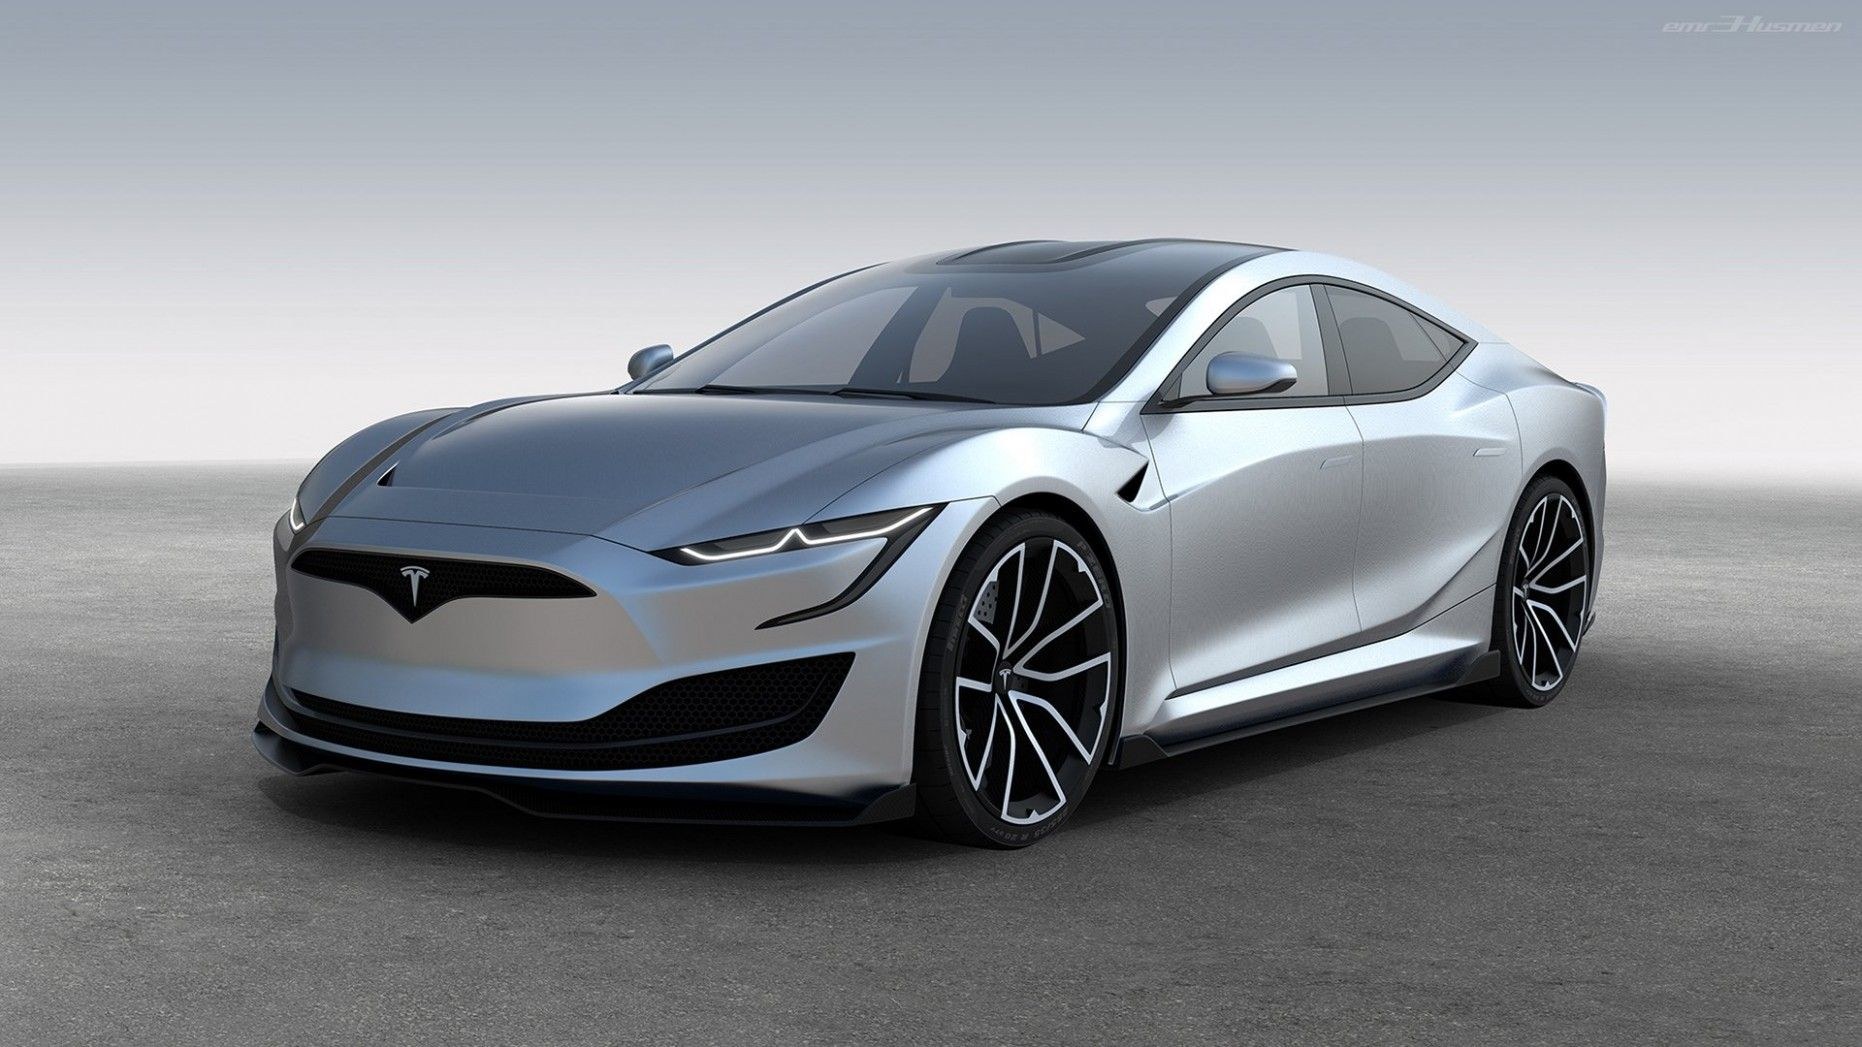 Five Ways On How To Prepare For 2021 Tesla Model S Design Tesla Model S Tesla Model X Tesla Model